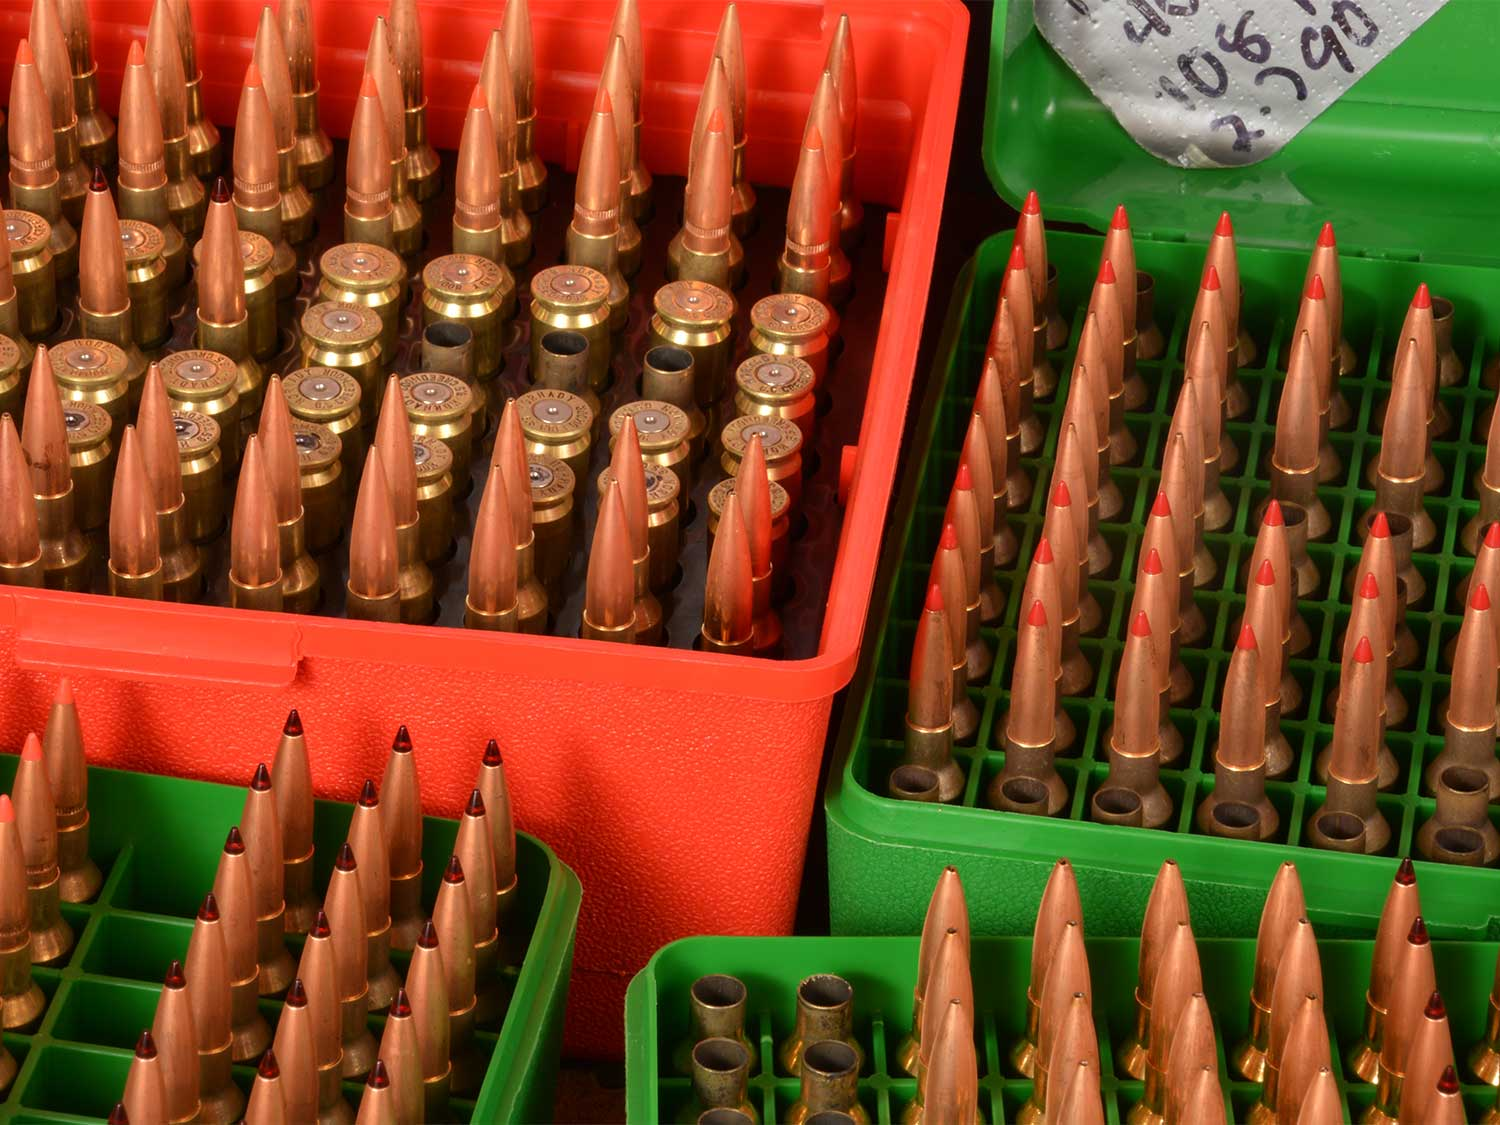 Boxes of reloaded handgun ammo.